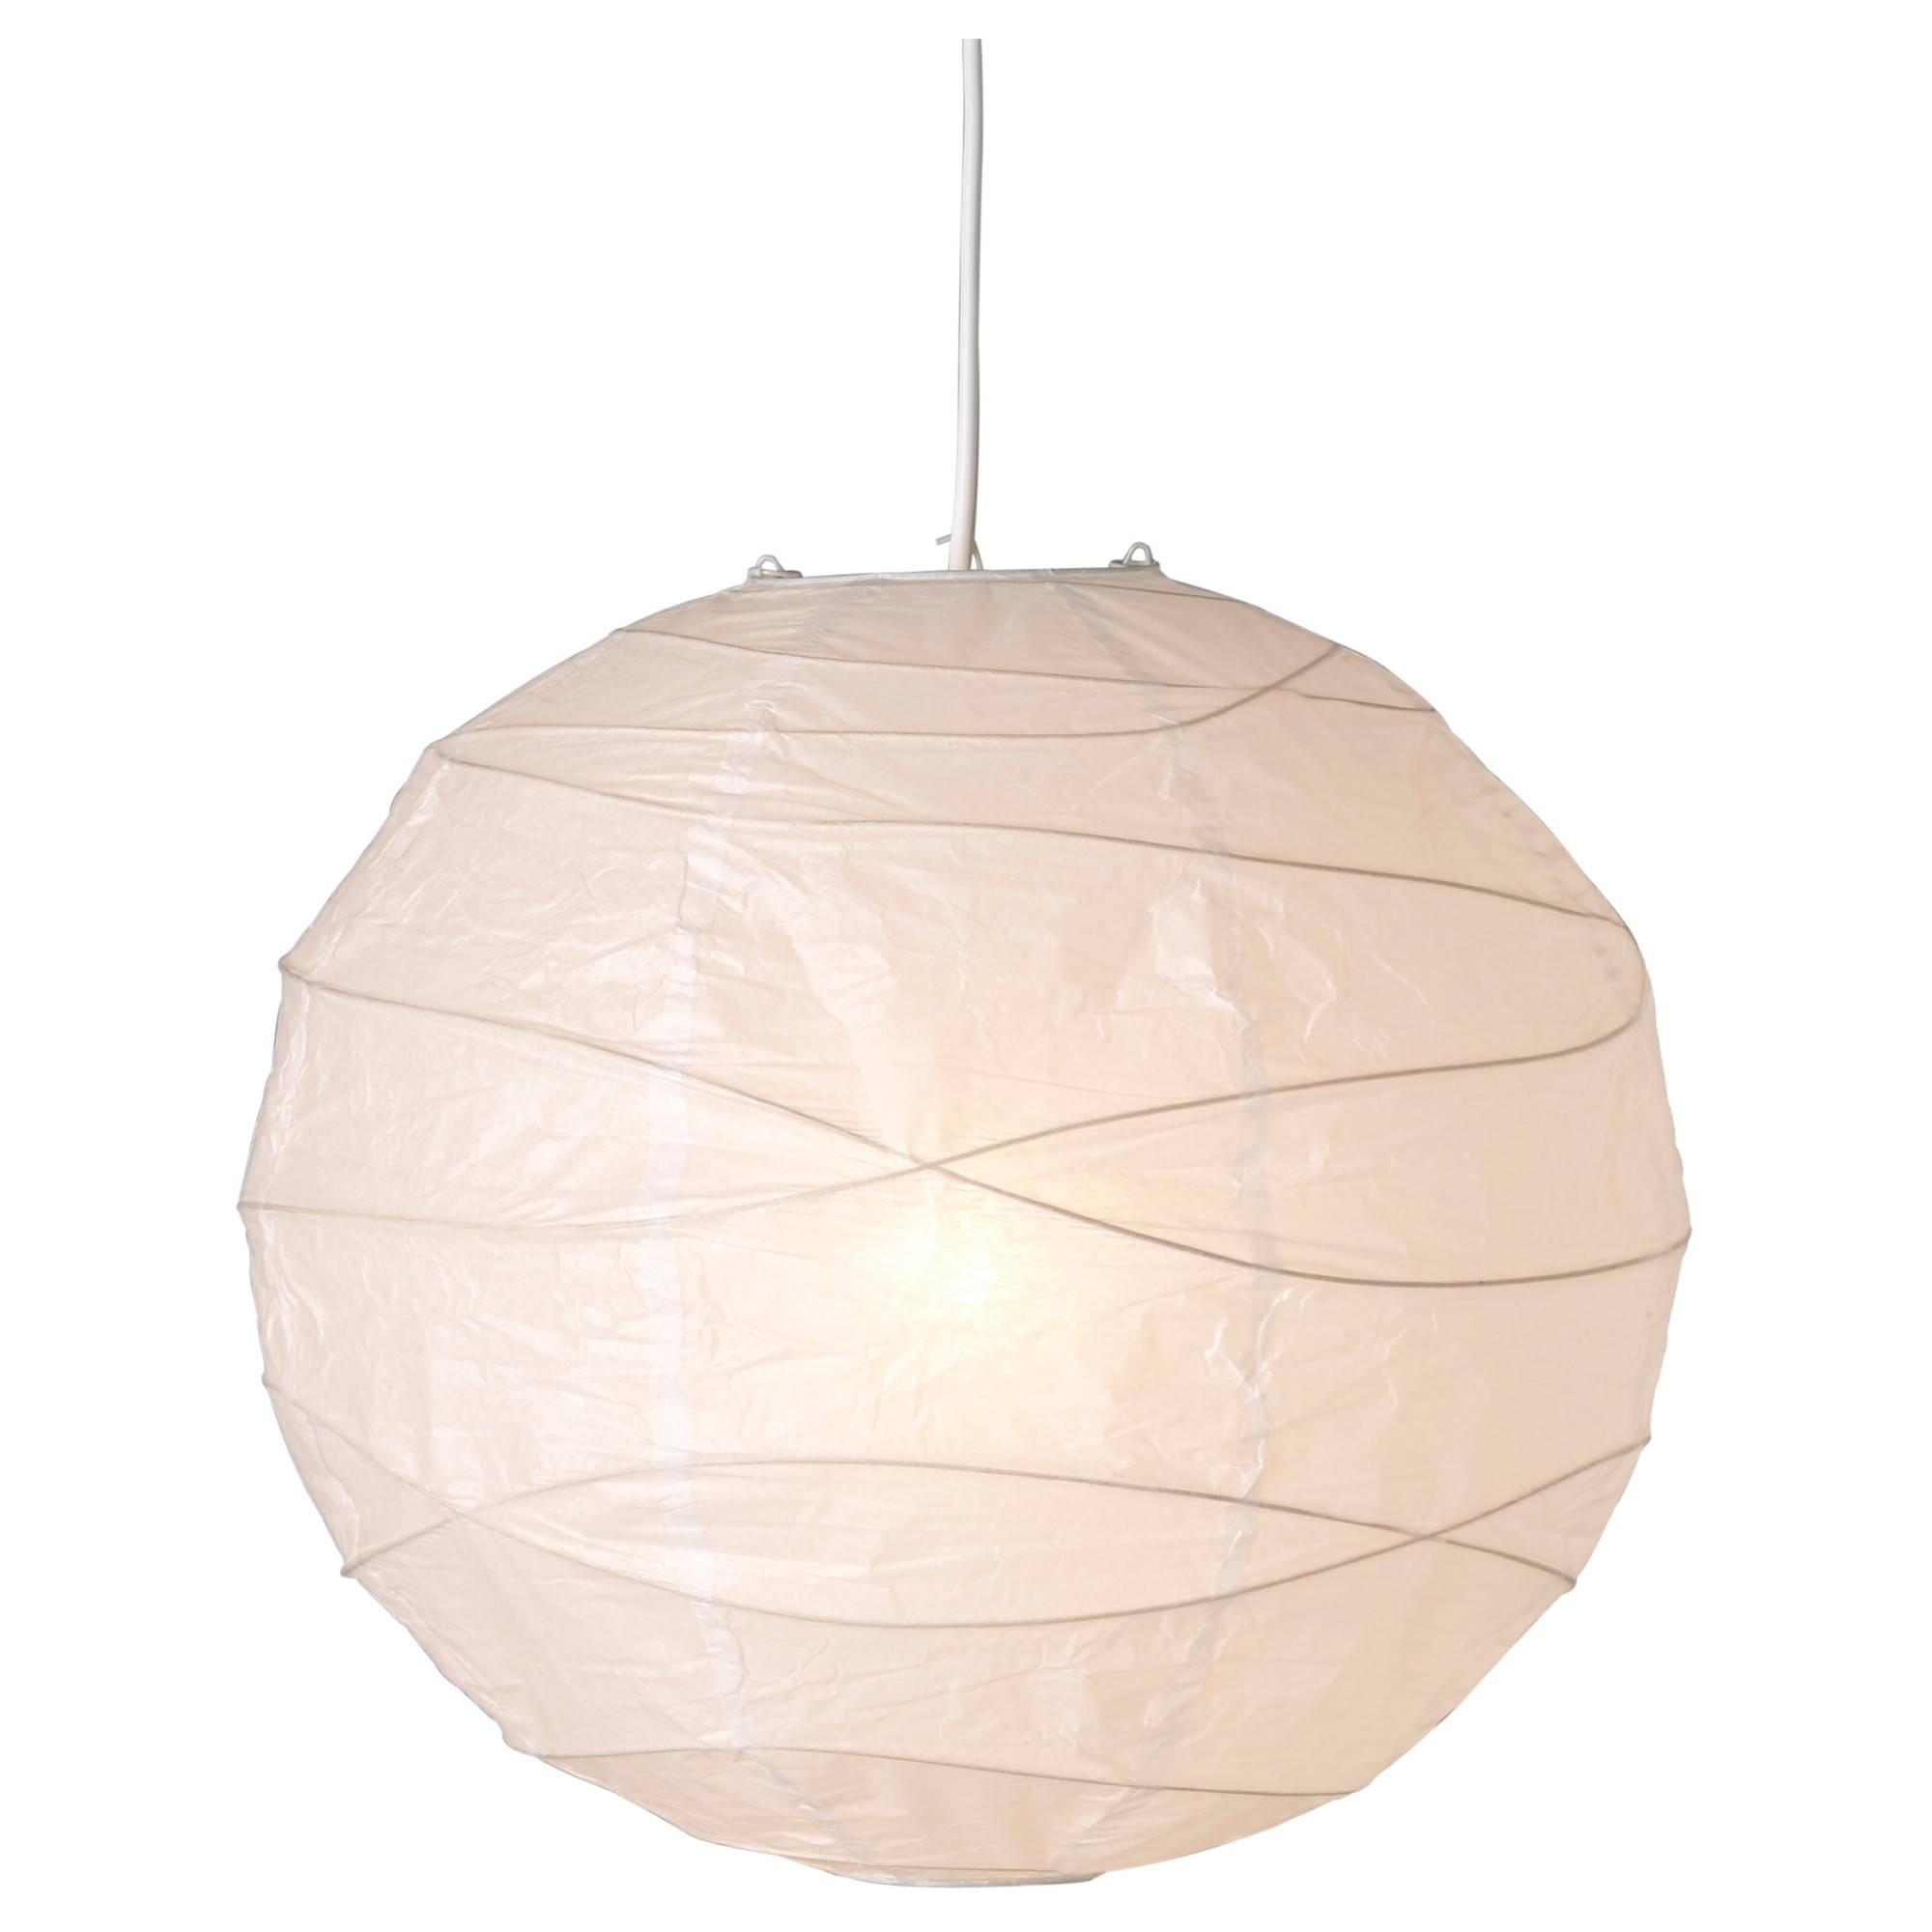 Regolit Pendant Lamp Shade White 45 Cm – Ikea Regarding Ikea Globe Lights (View 14 of 15)